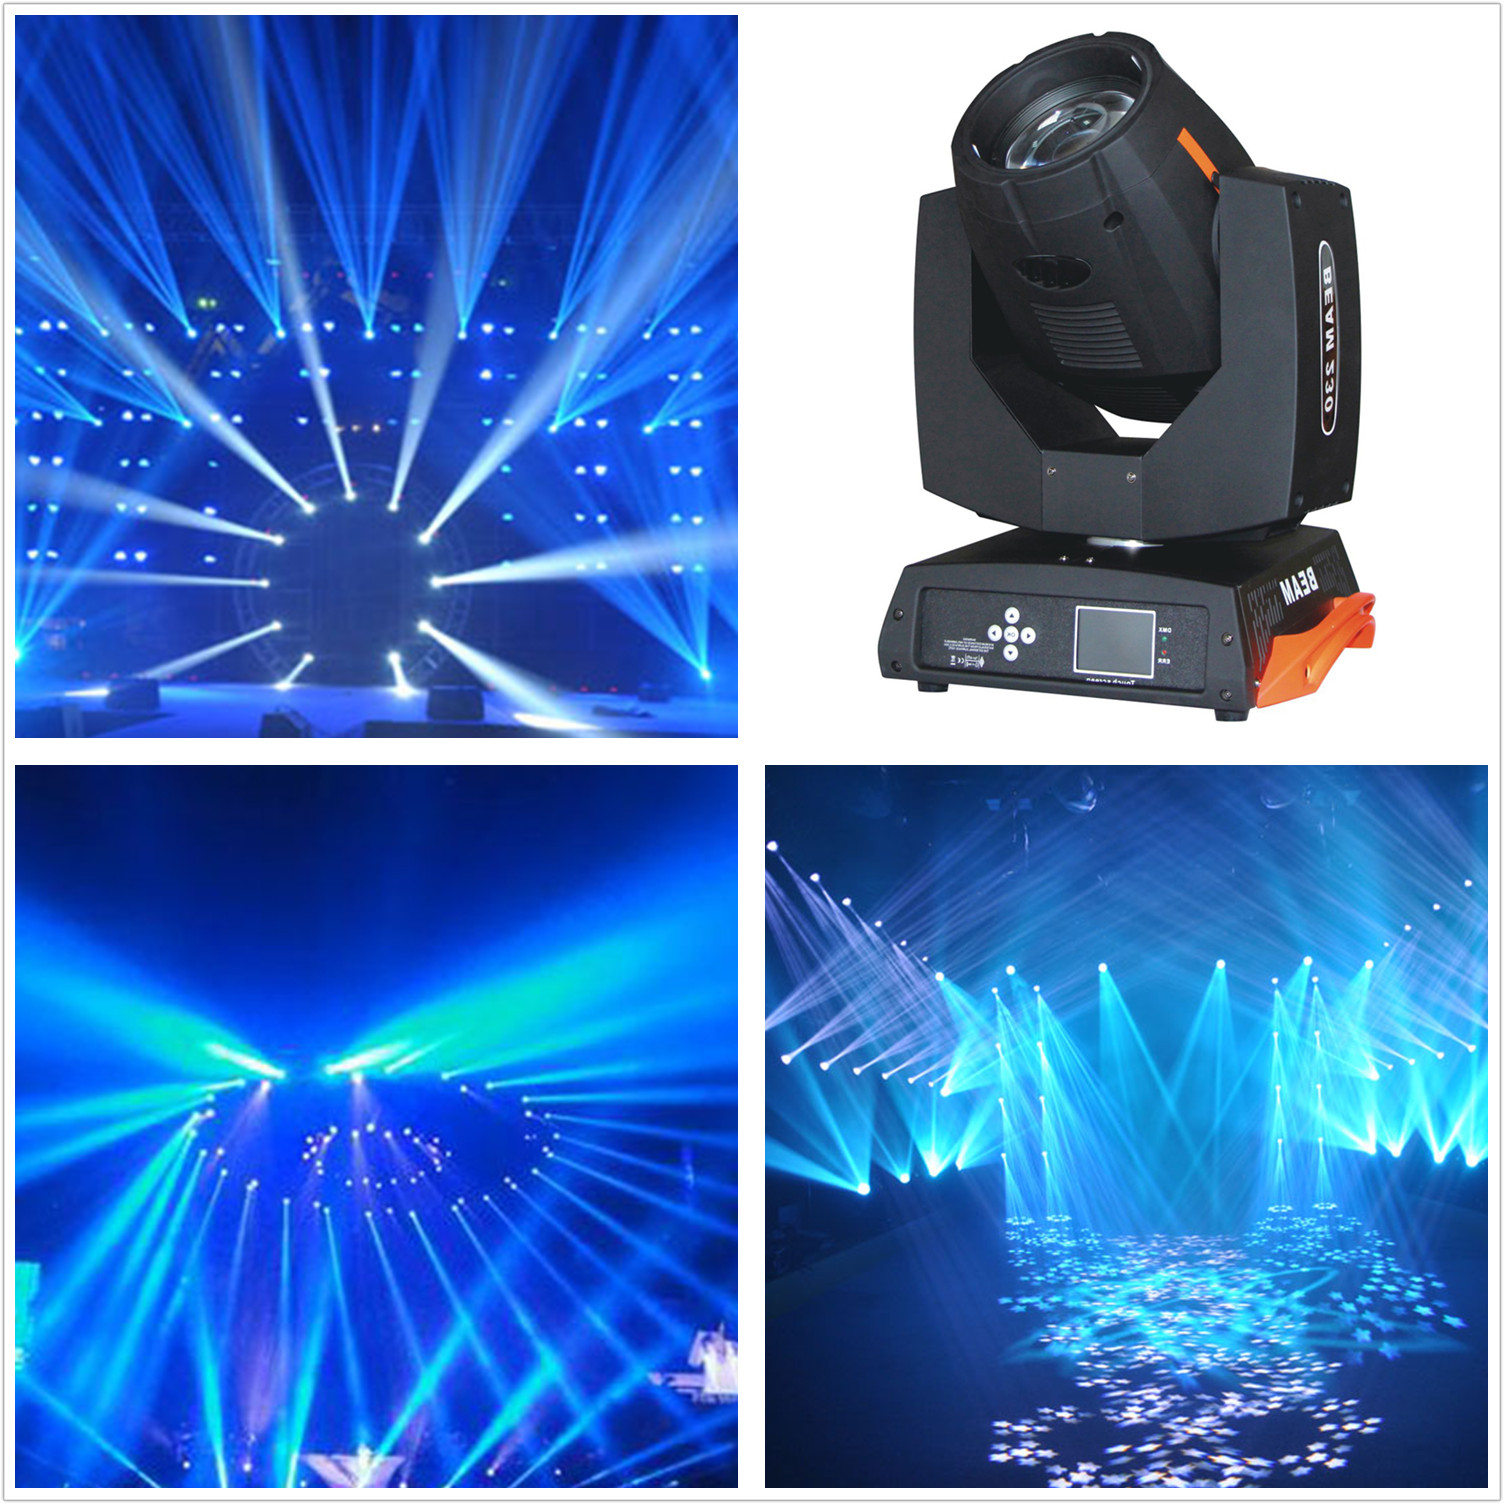 ROCCER Sharpy Beam 230W 7R Moving Head Light/ 230 Beam 7R Disco Lights for DJ Club Nightclub Party